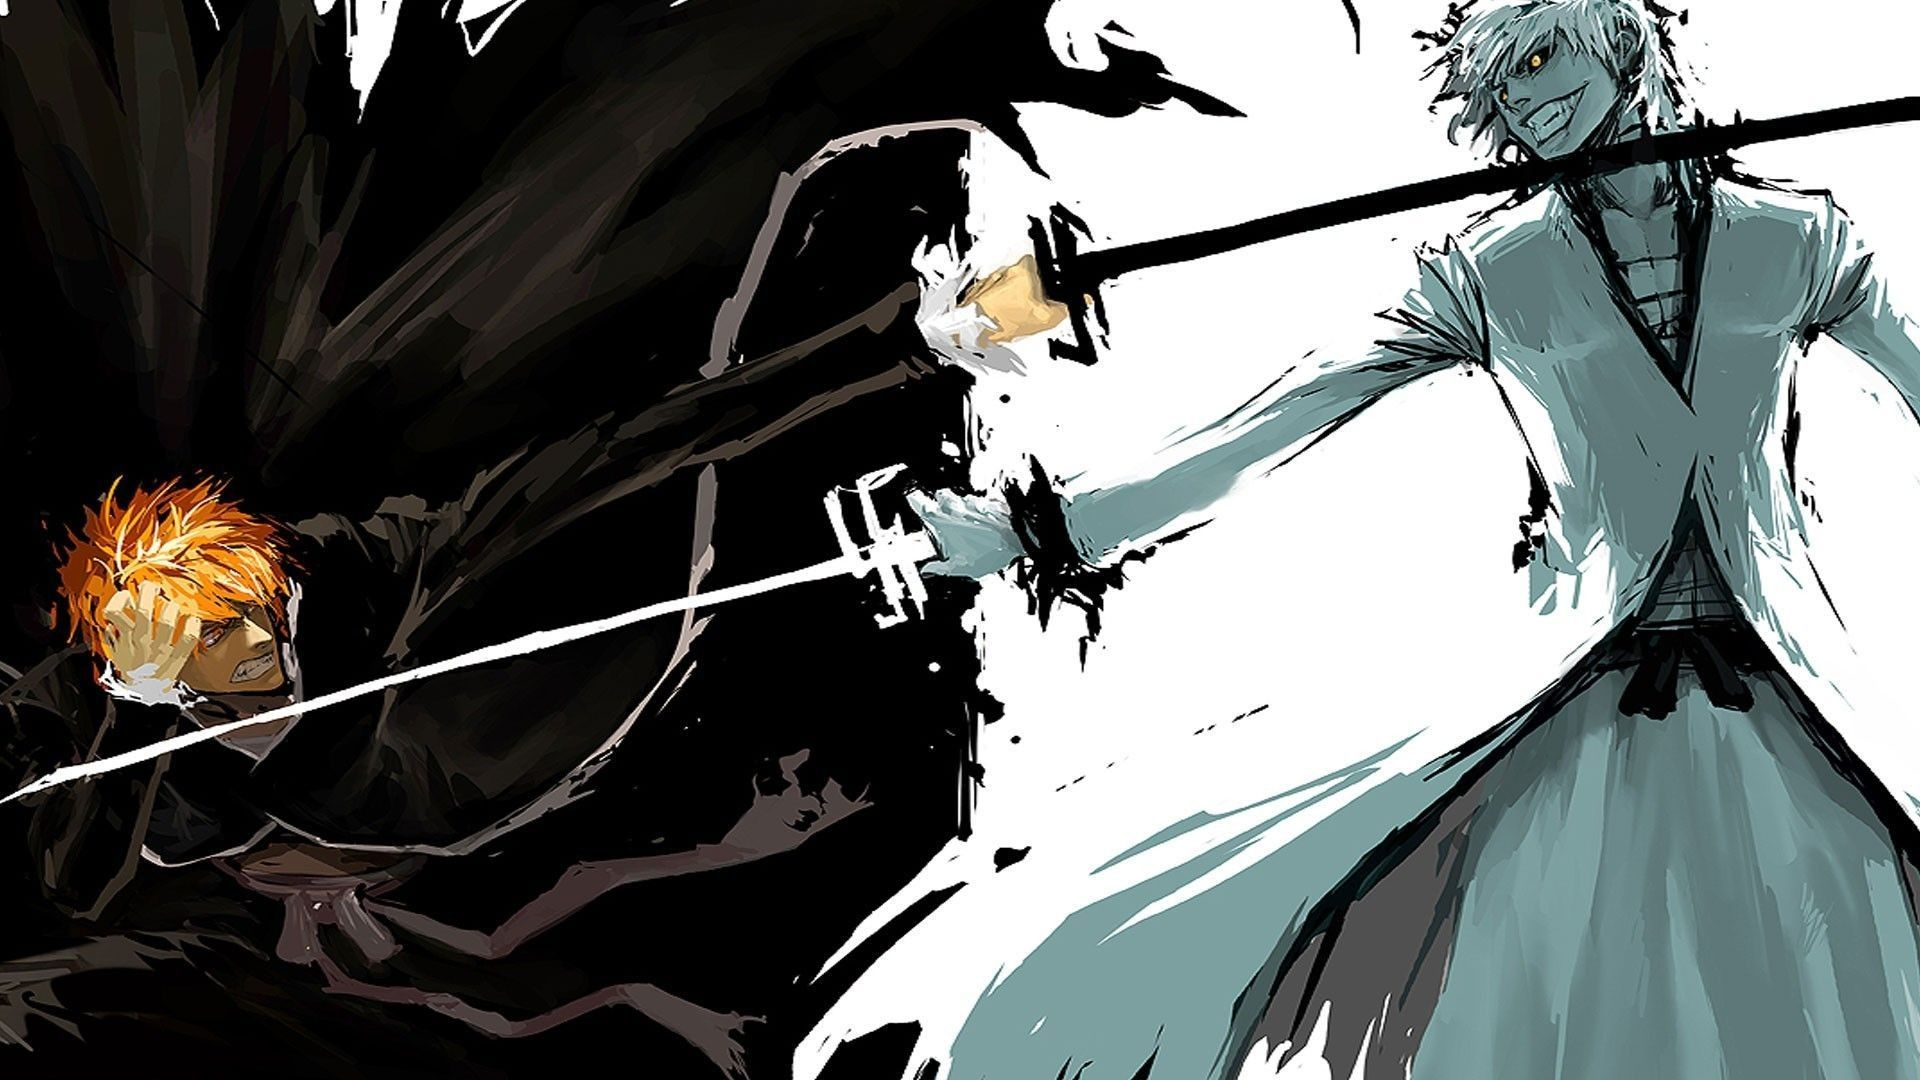 1920x1080 37+ Awesome anime wallpapers ·① Download free awesome HD wallpapers ...